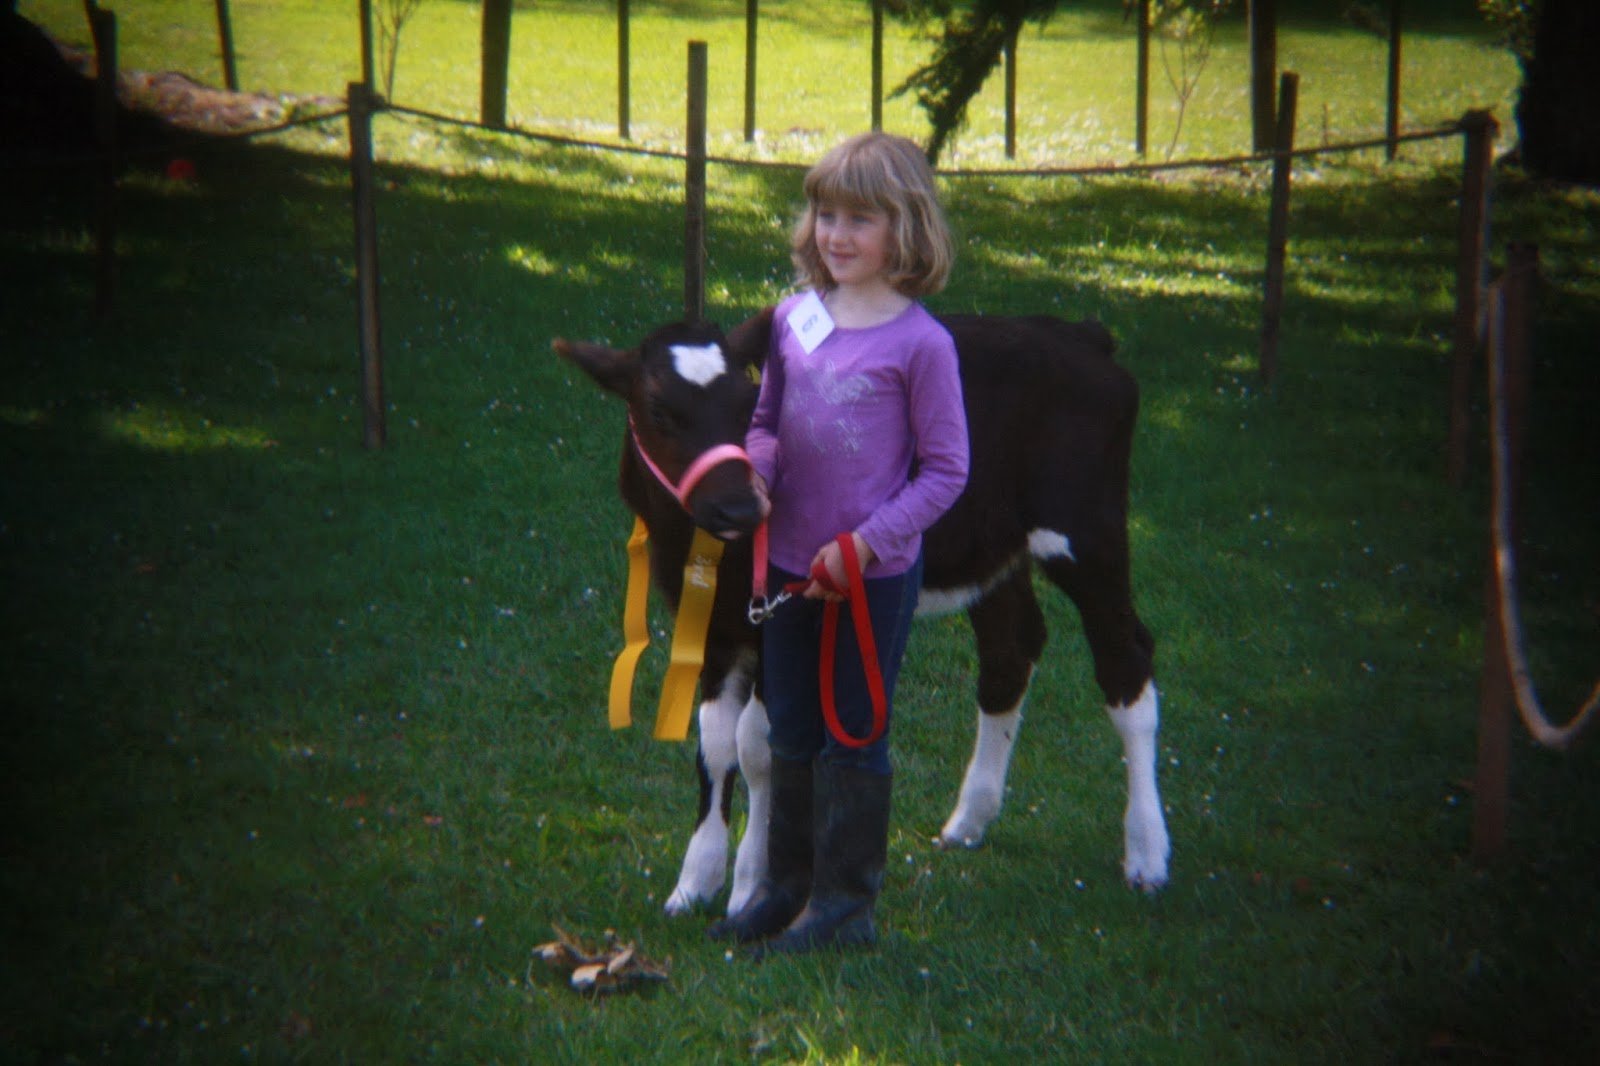 A little girl with an award winning calf.